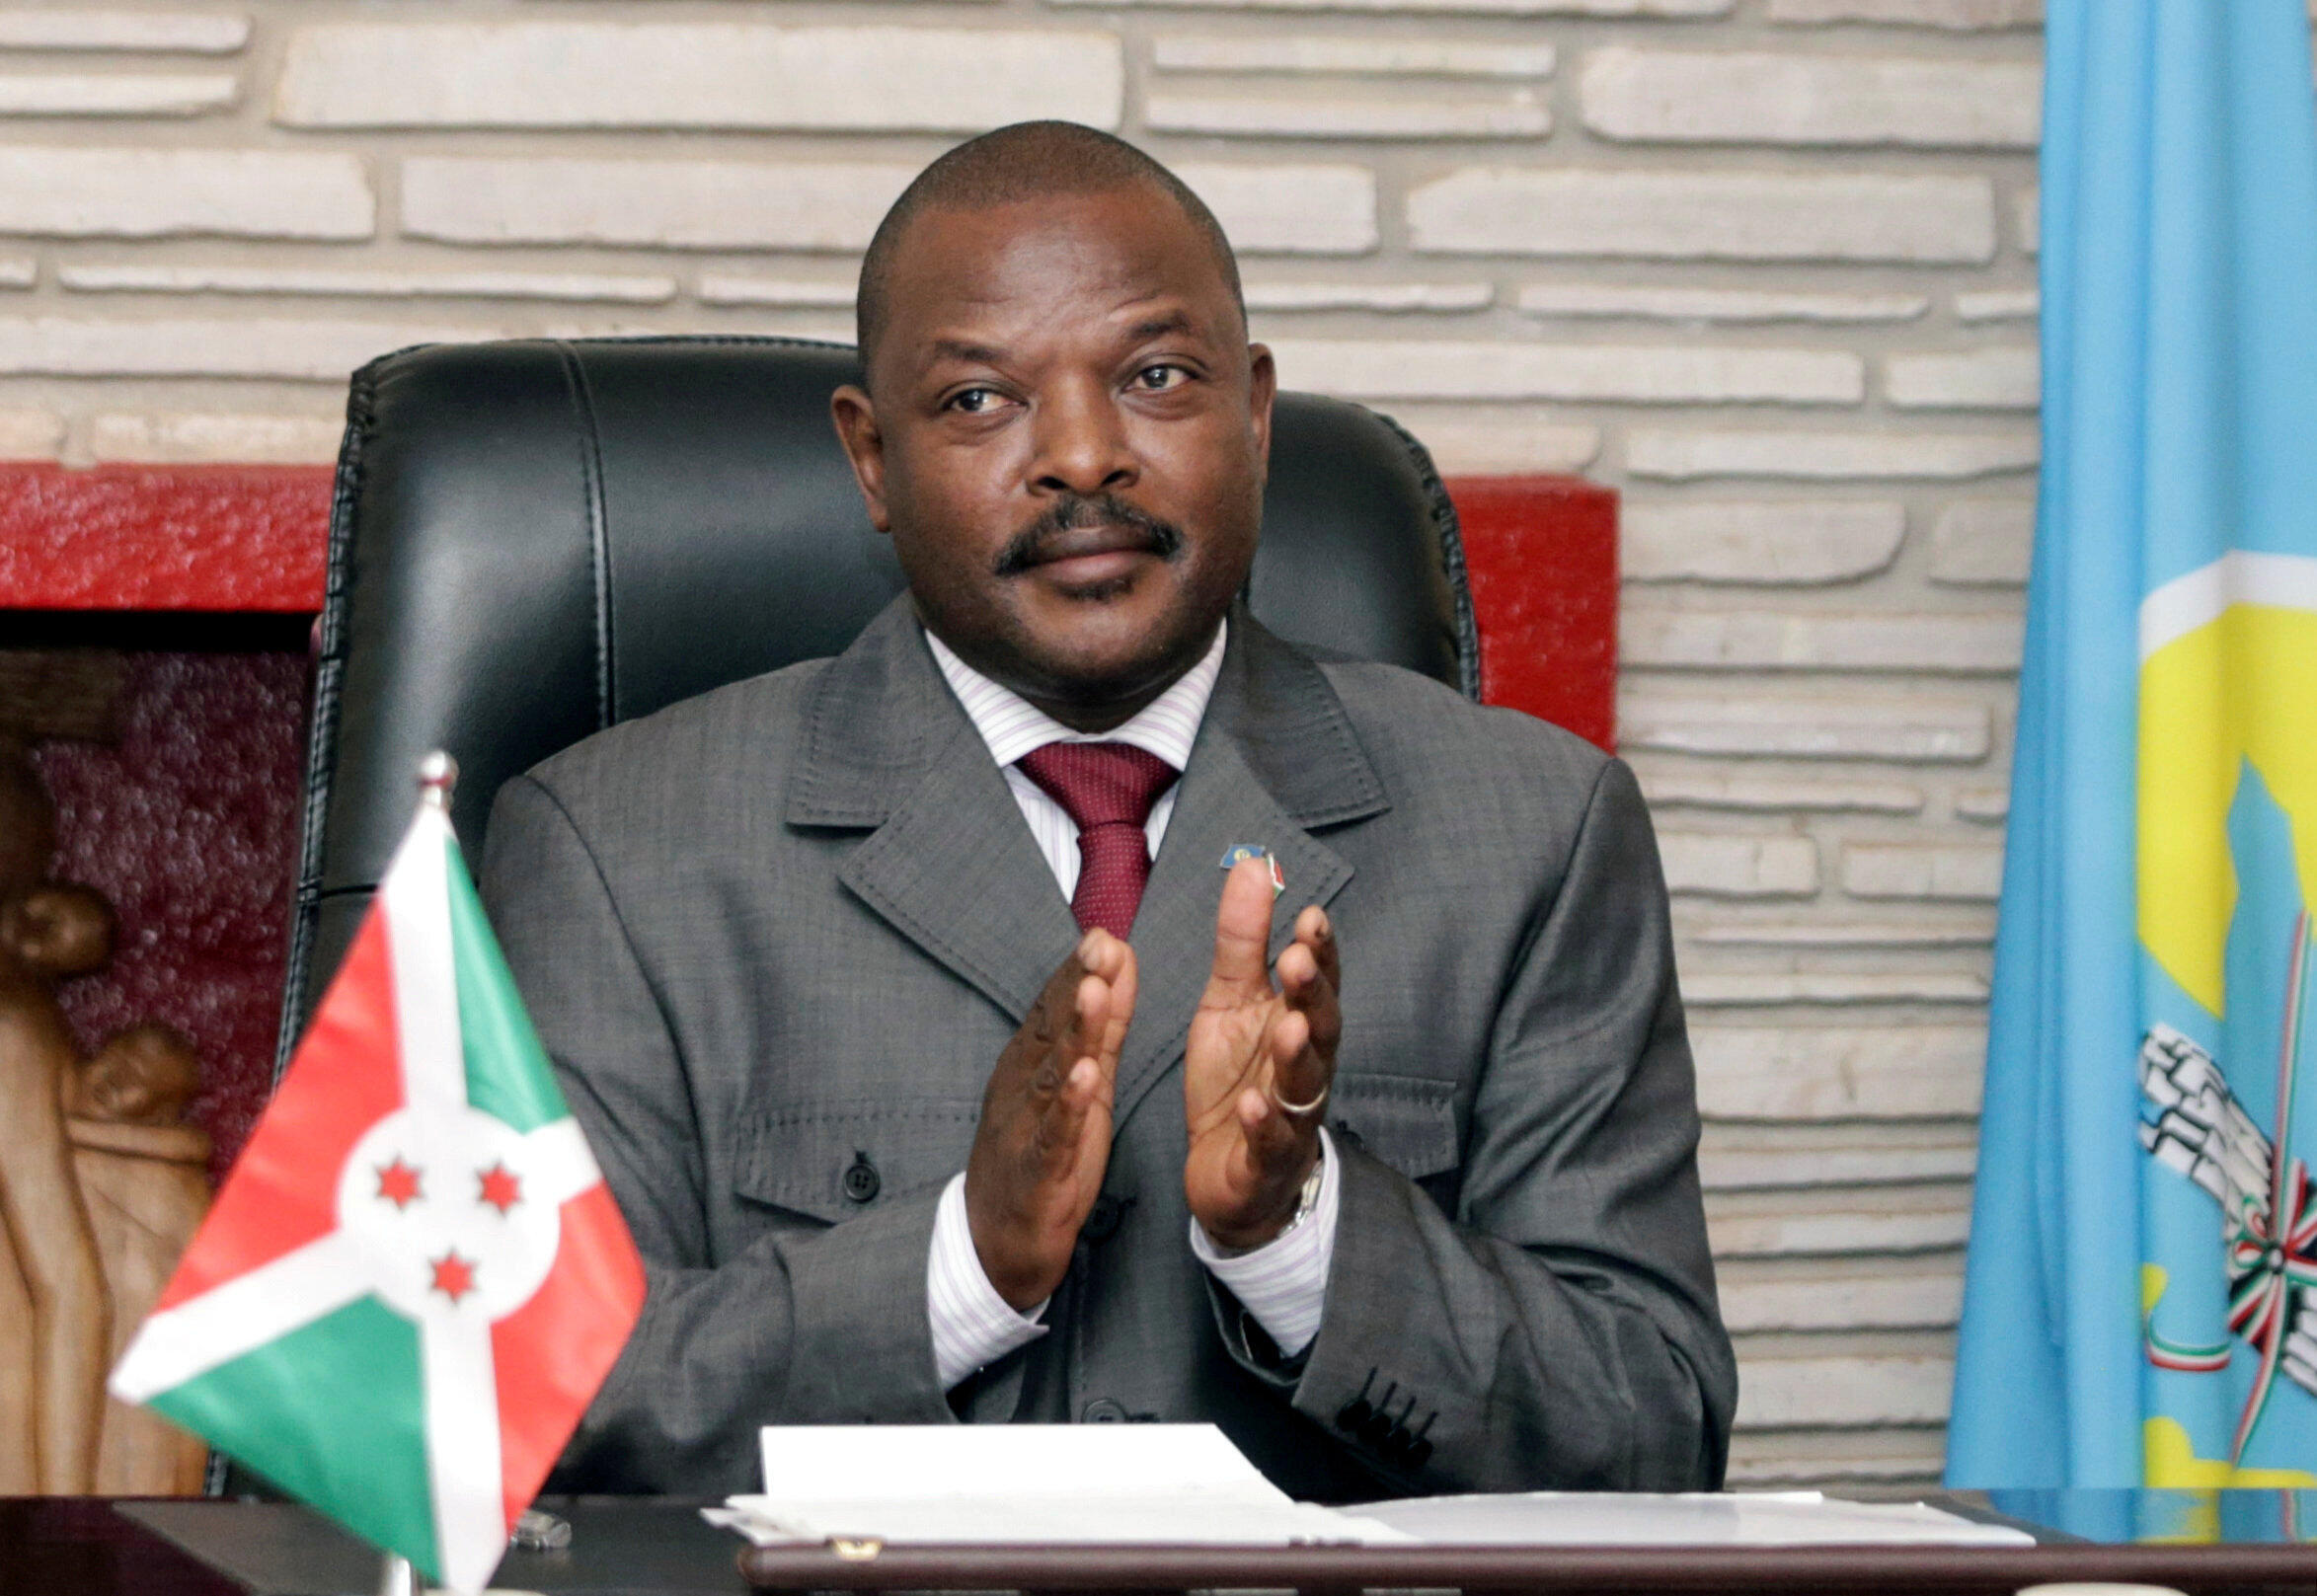 Pierre Nkurunziza, who has died at the age of 55, became president of Burundi i 2005.